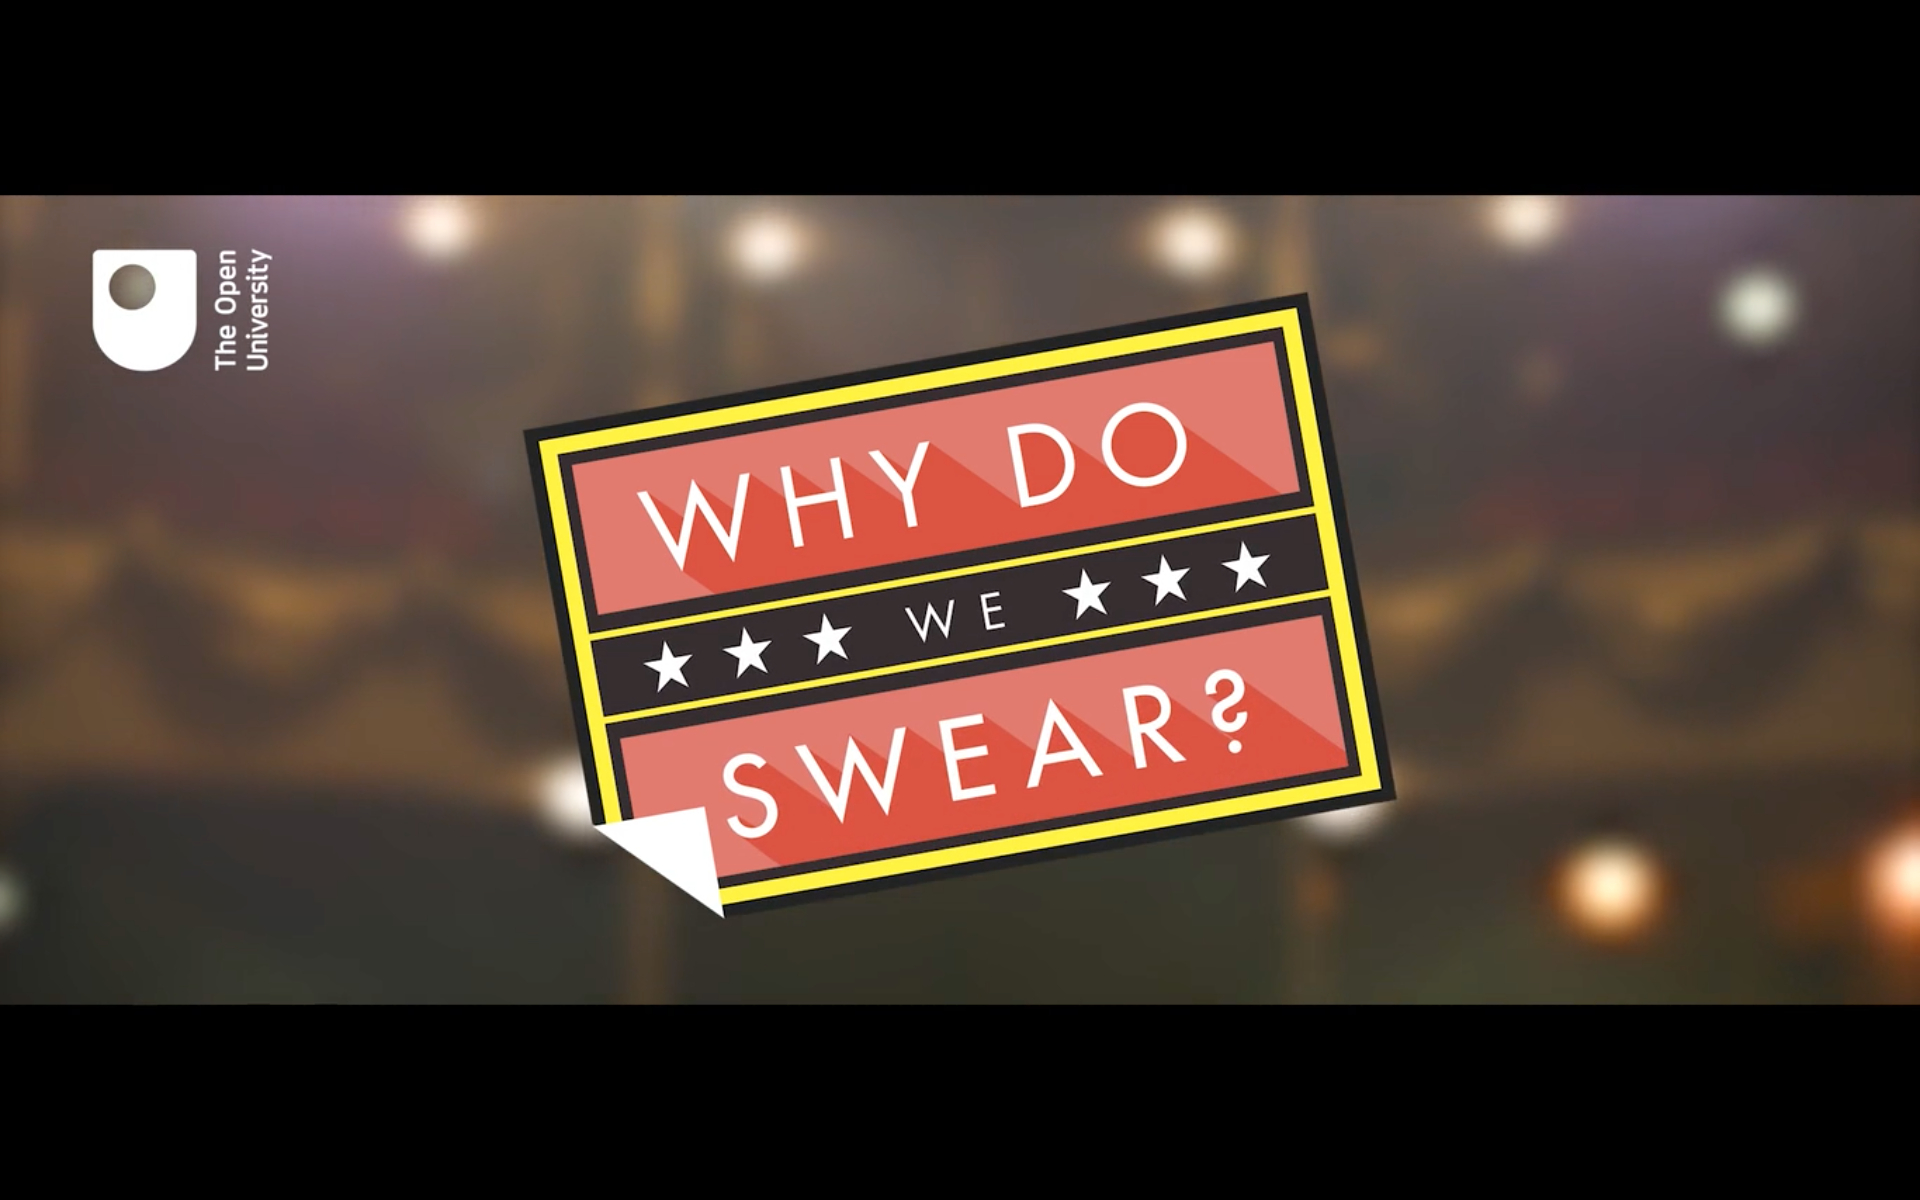 Why Do We Swear?